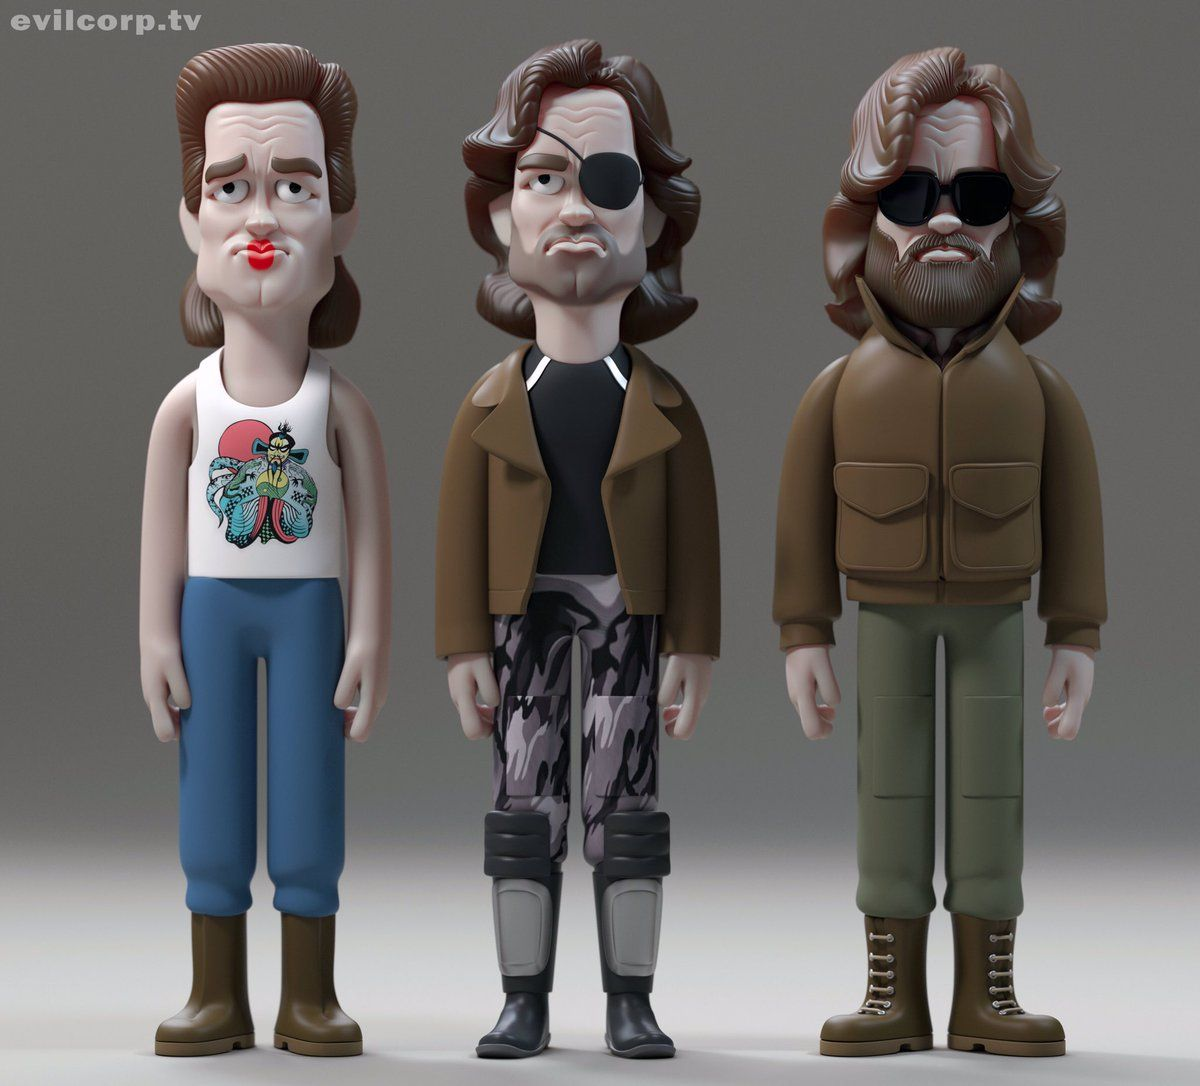 Kurt Russell Vinyl Doll Characters By A Large Evil Corp